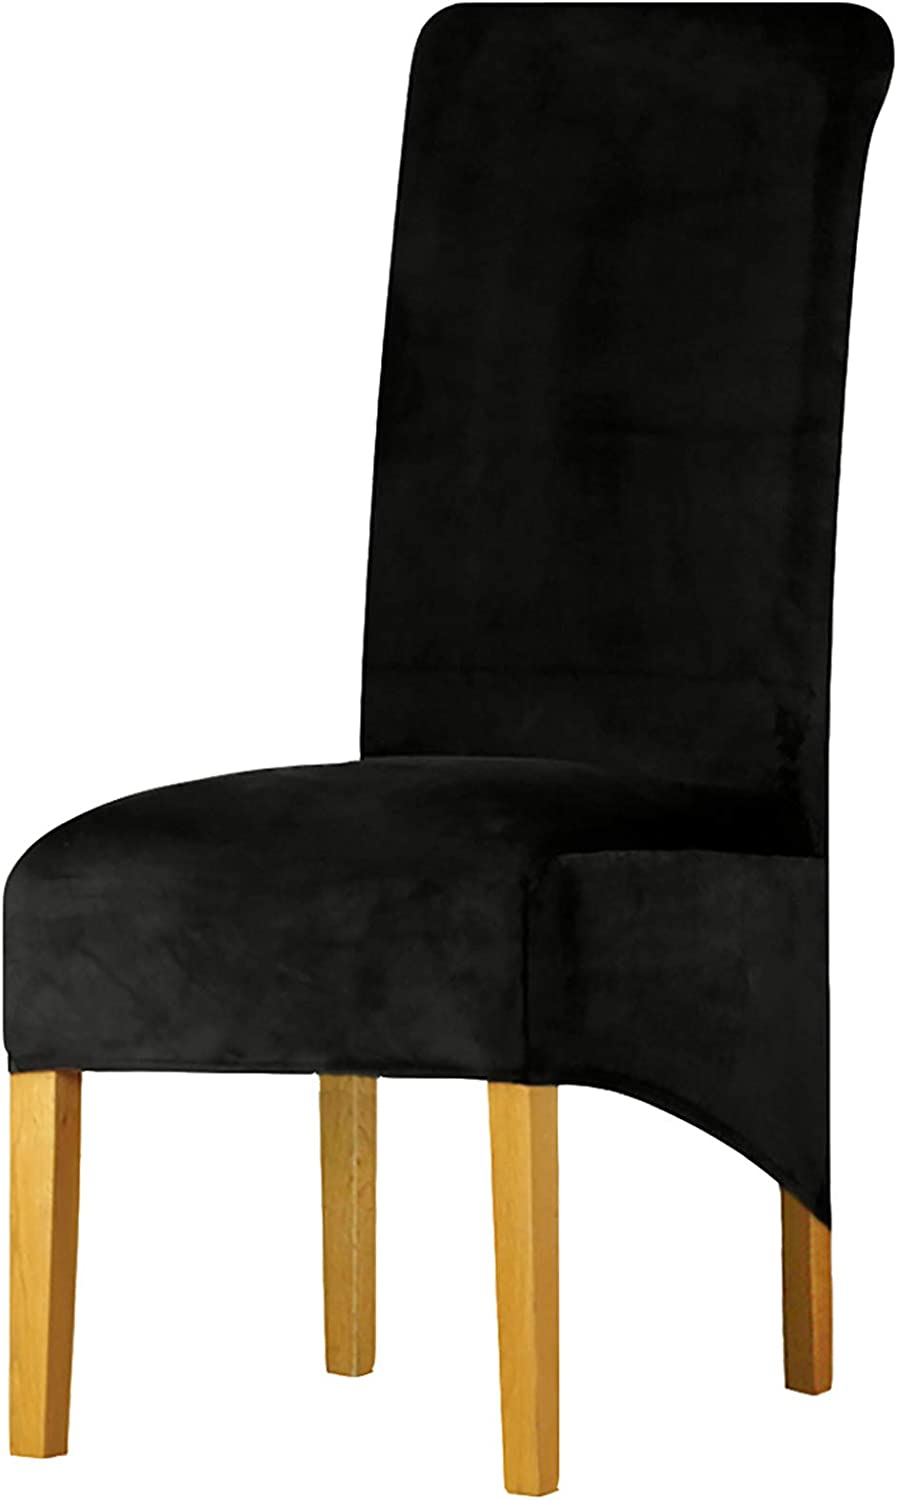 Velvet Plush XL Dining Chair Covers, Stretch Chaircover, Spandex High Chairs Protector Covers Seat Slipcover with Elastic Band for Dining Room,Wedding, Ceremony, Banquet (Black, Set of 2)